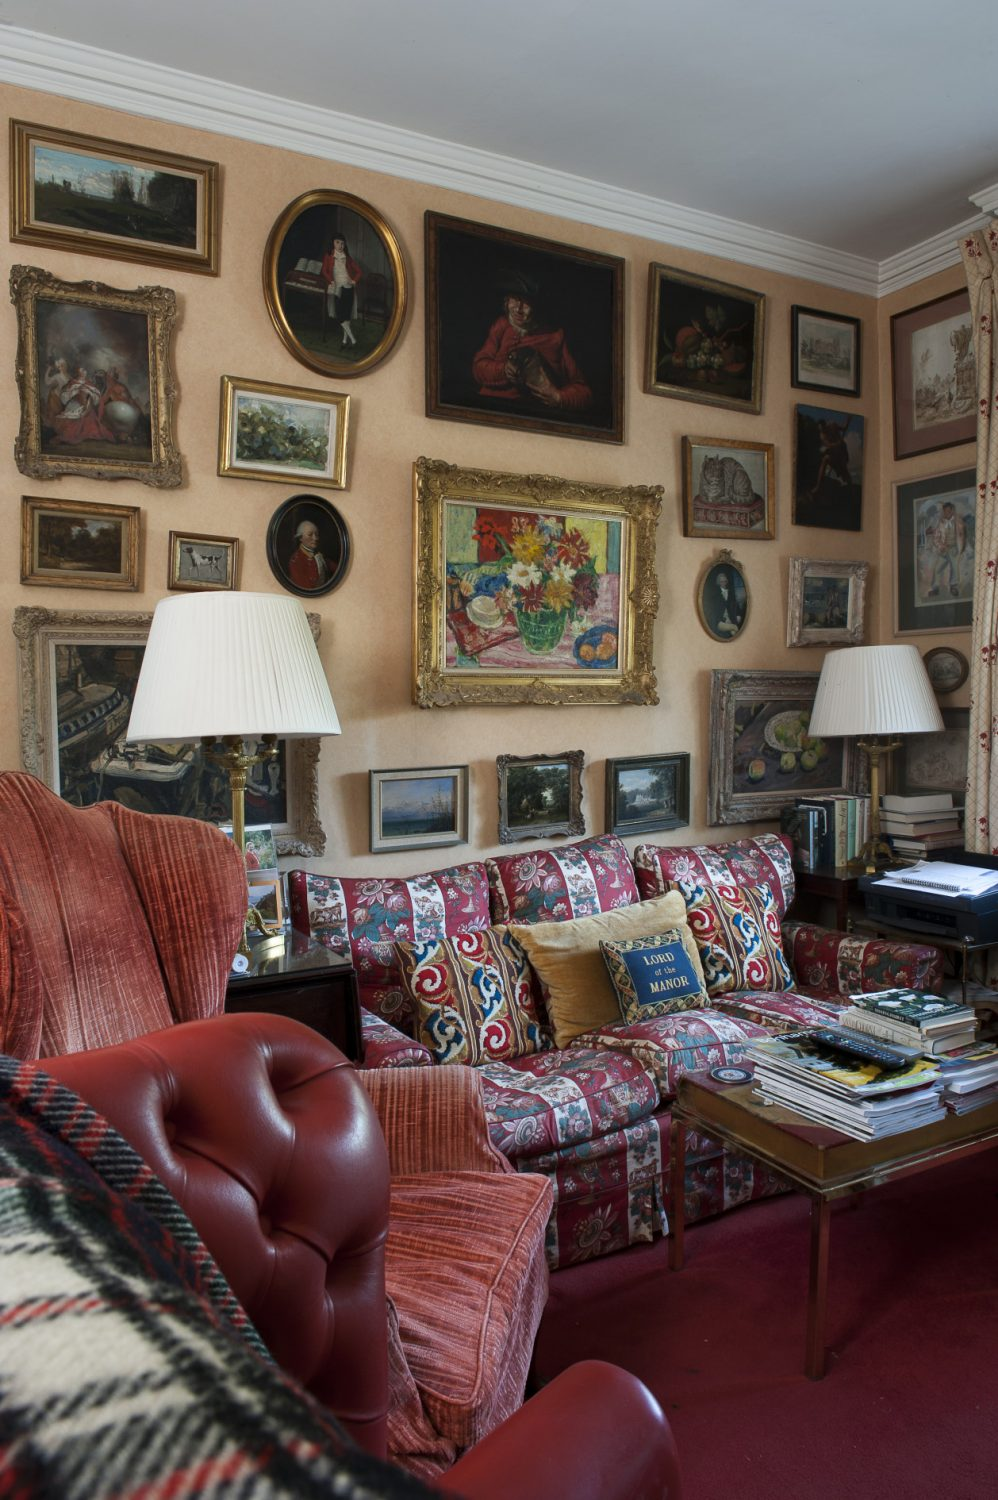 The walls of the snug are a tightly packed collection of colourful paintings and drawings